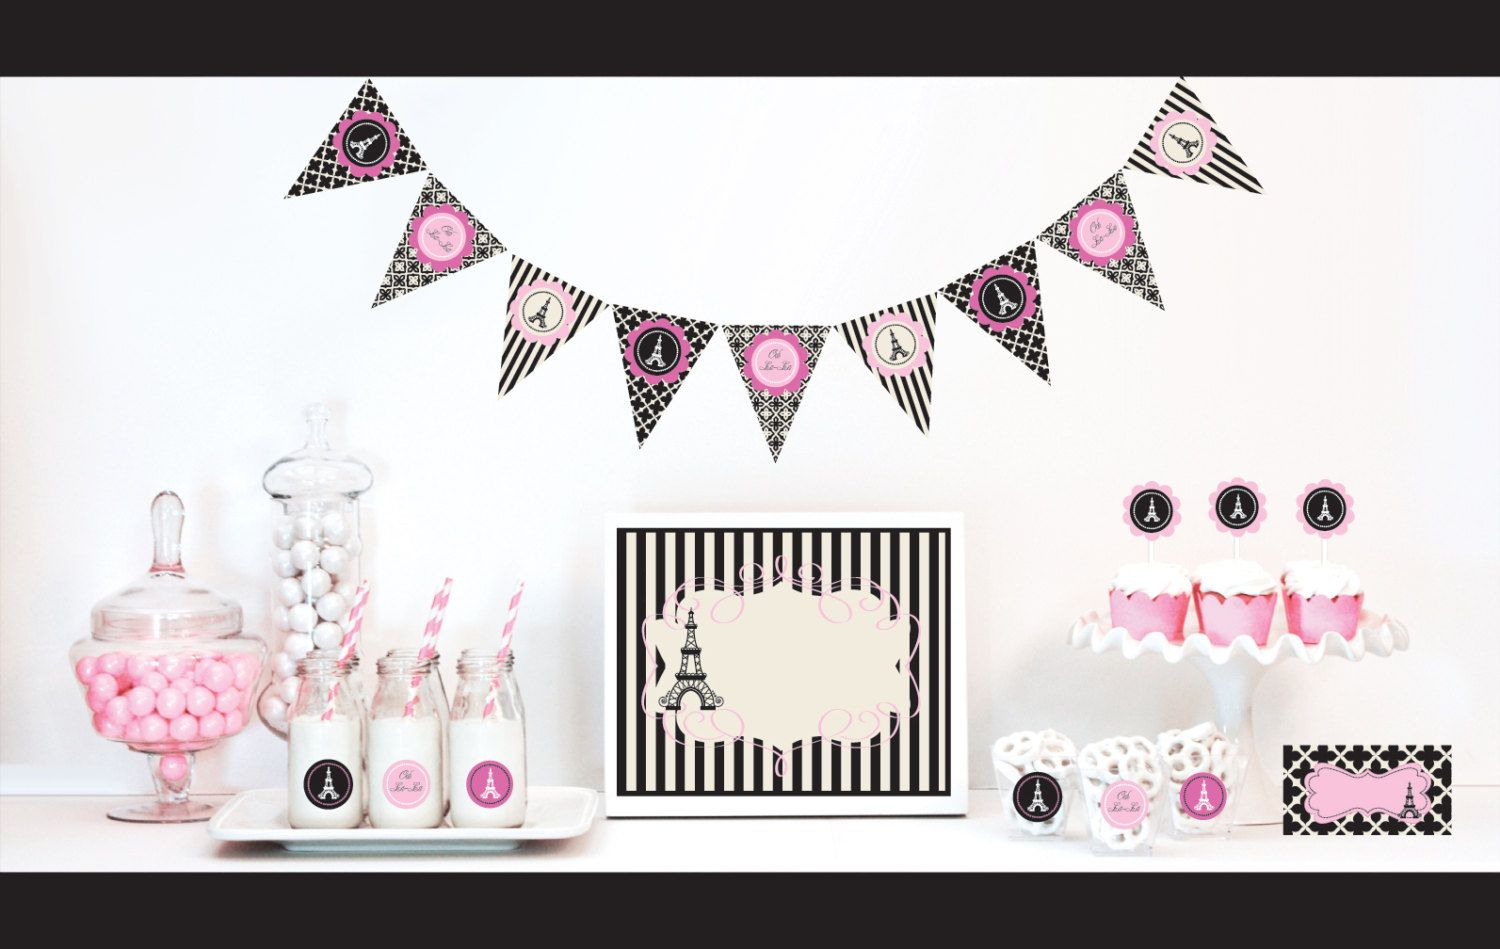 Paris themed birthday party ideas - Paris Themed Party Decorations Kit Bridal Shower Por Modparty